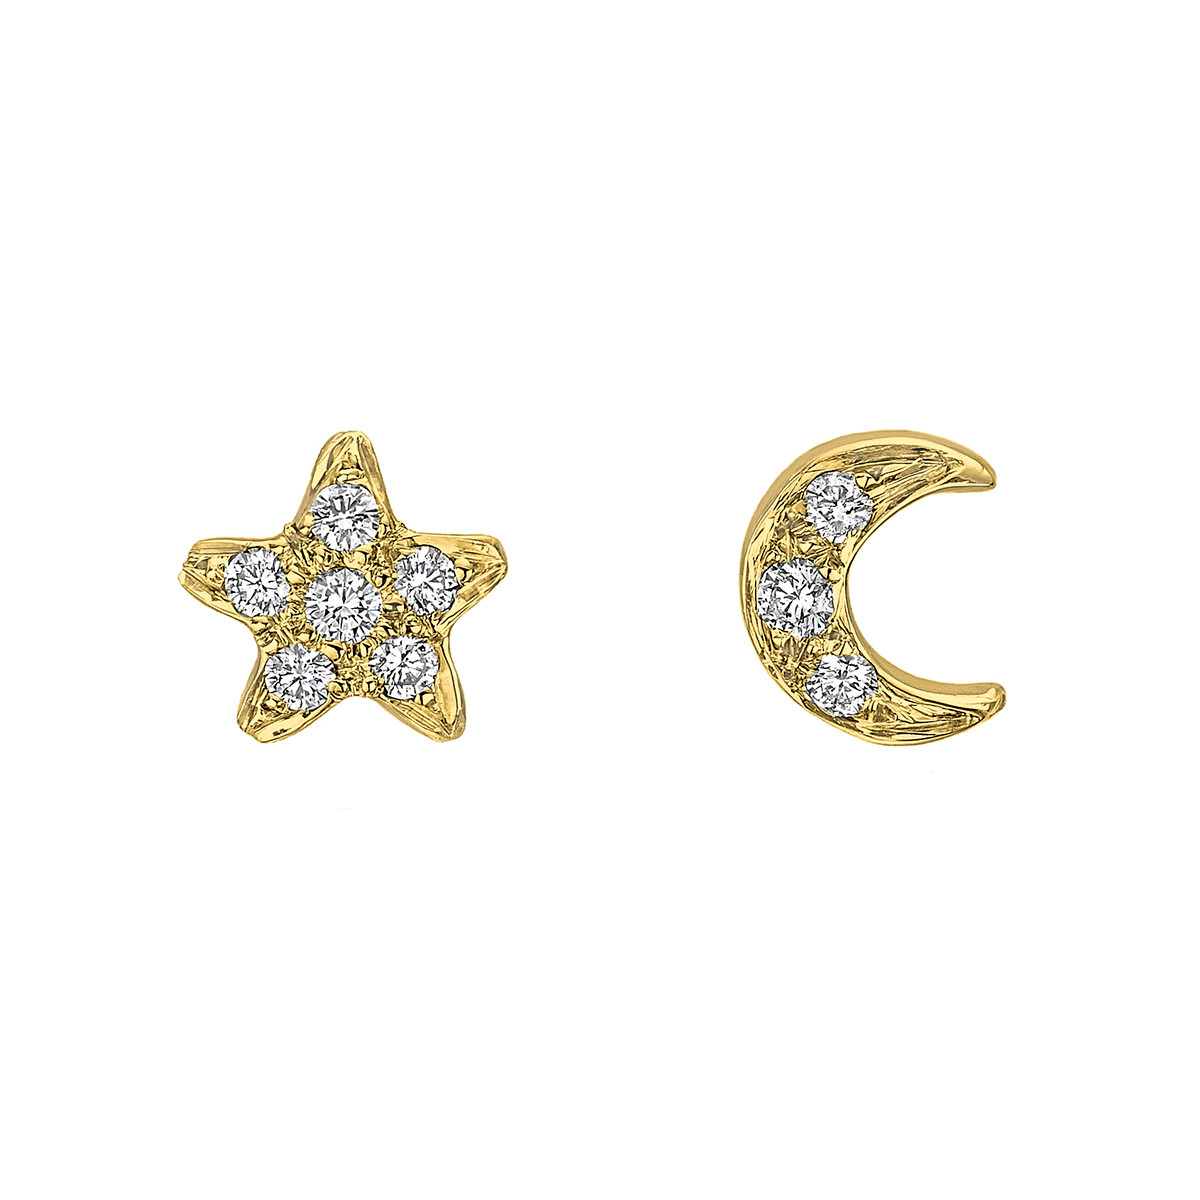 Small 18k Yellow Gold & Diamond Star & Moon Earstuds